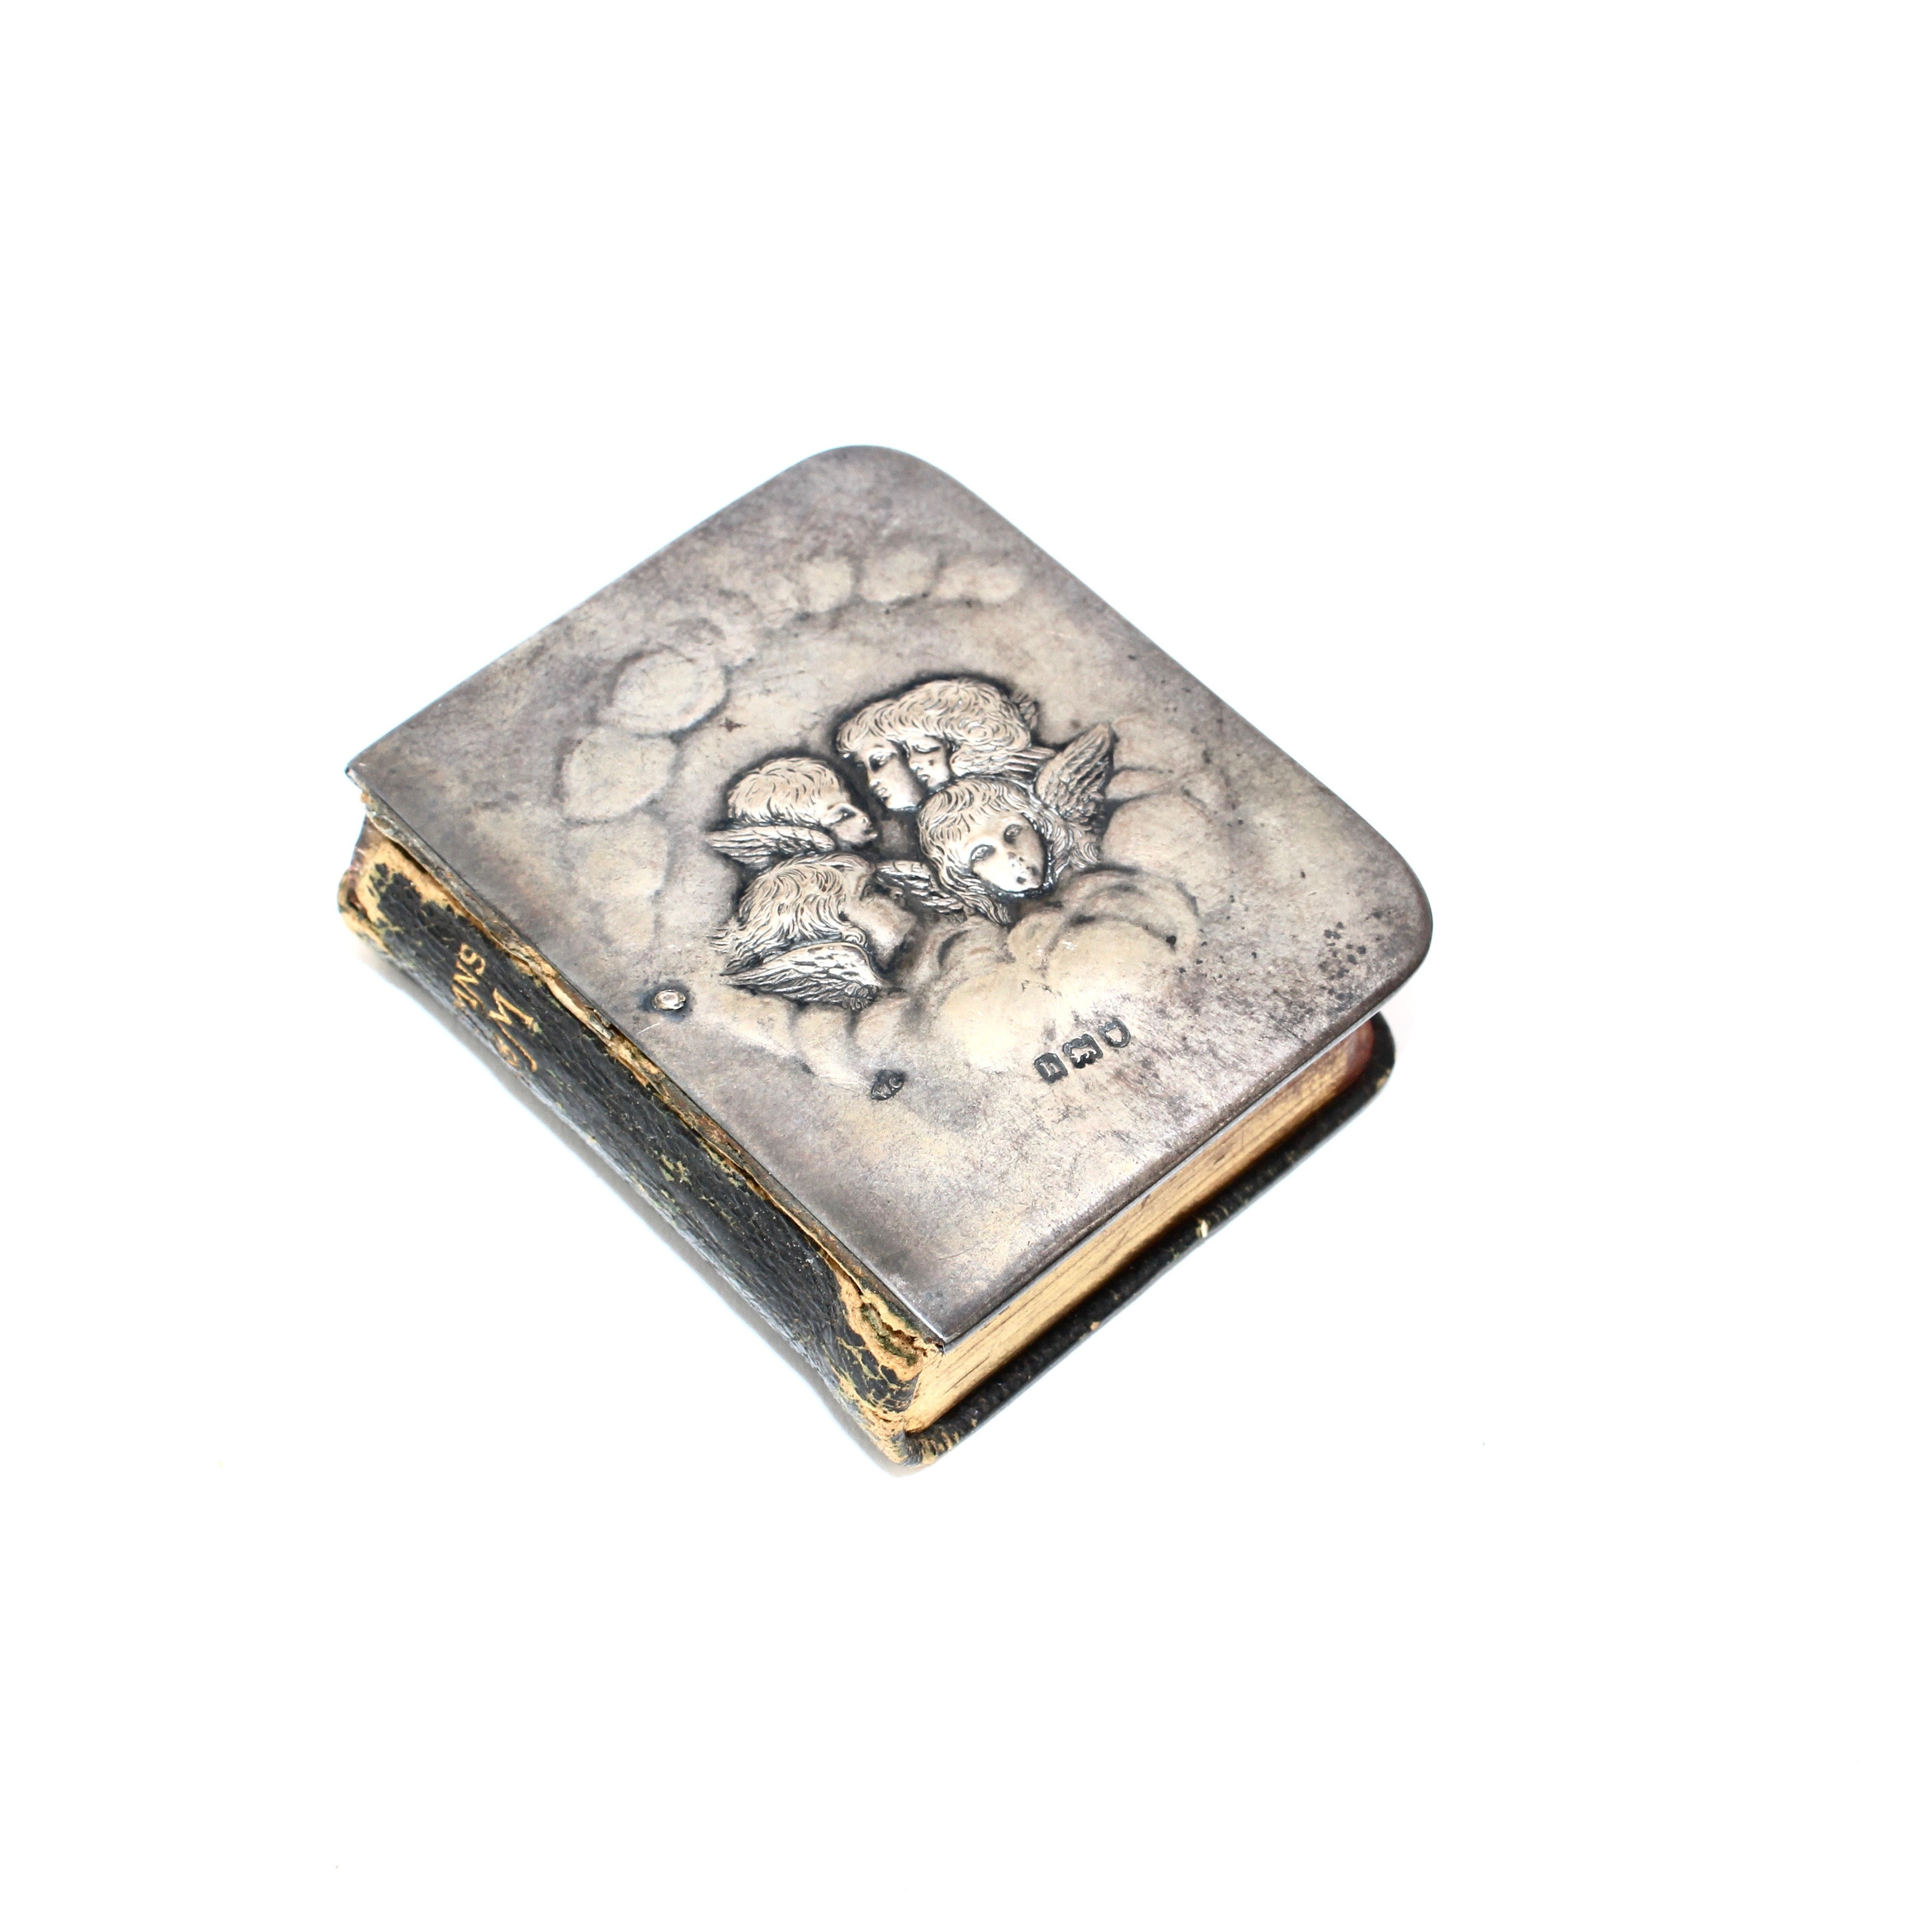 Antique Sterling Silver Cherub Miniature Book of Hymns